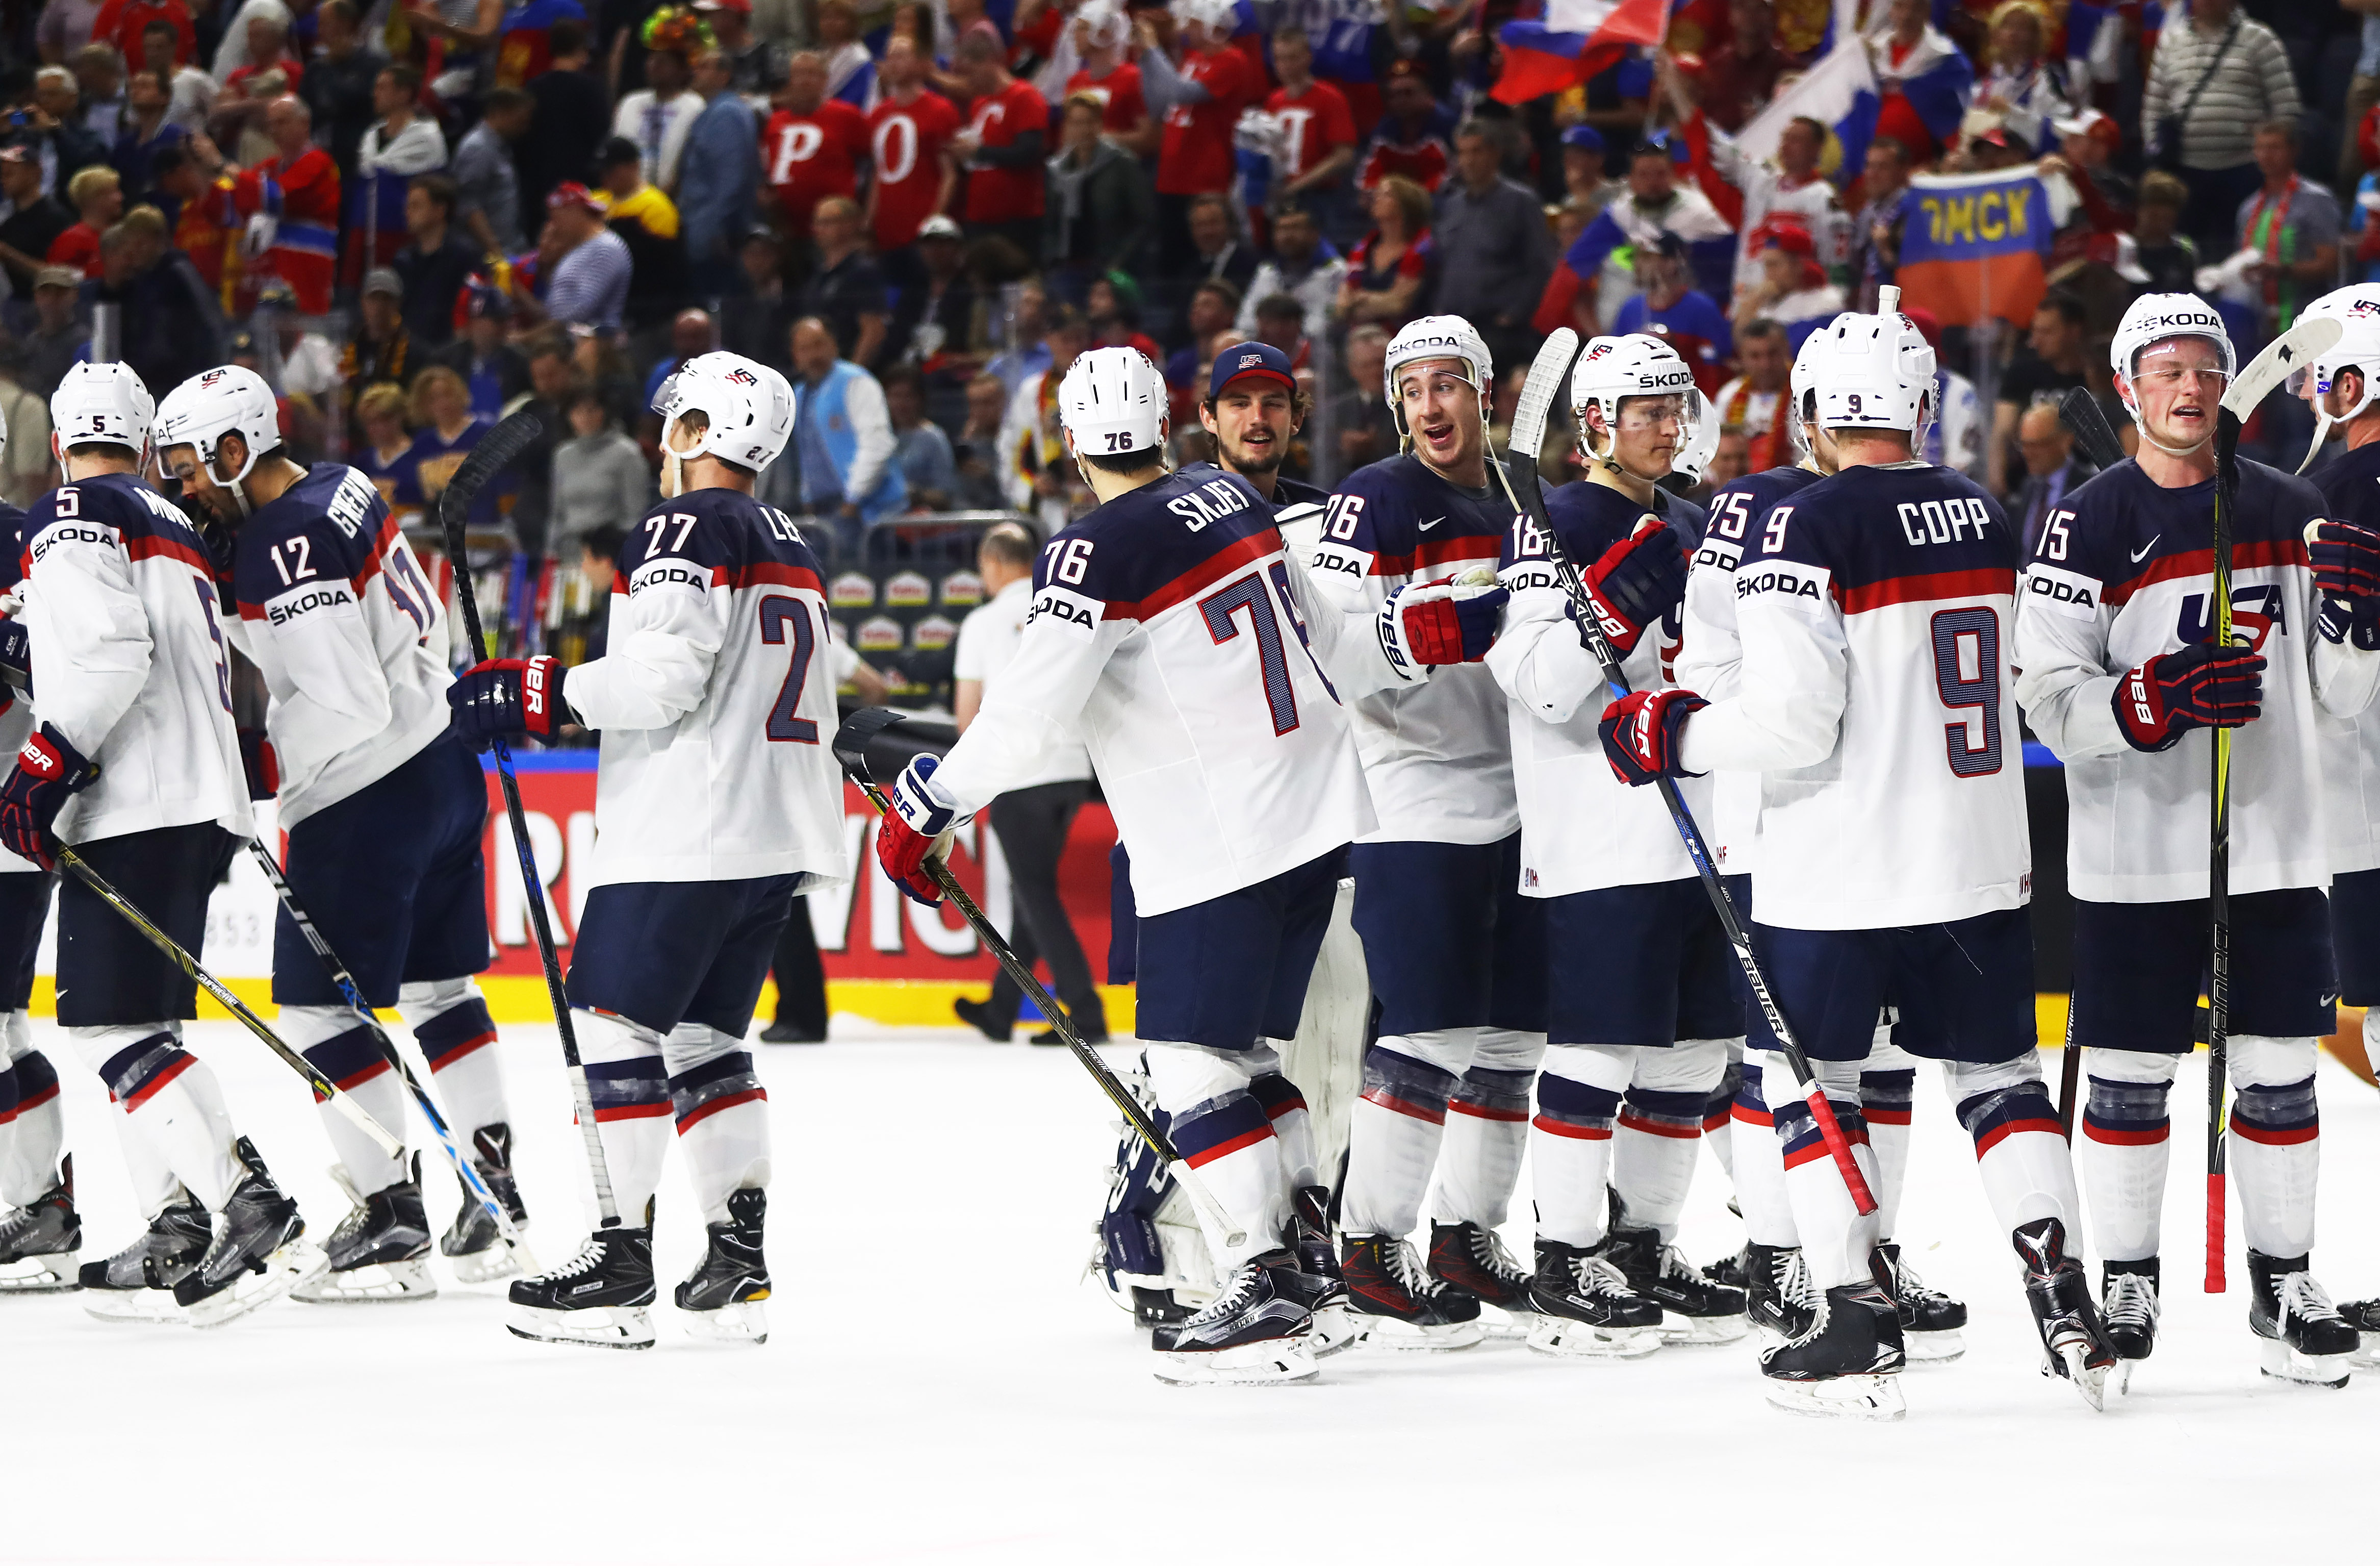 Jack Eichel (15) and the Americans have won six straight games. (Getty Images)